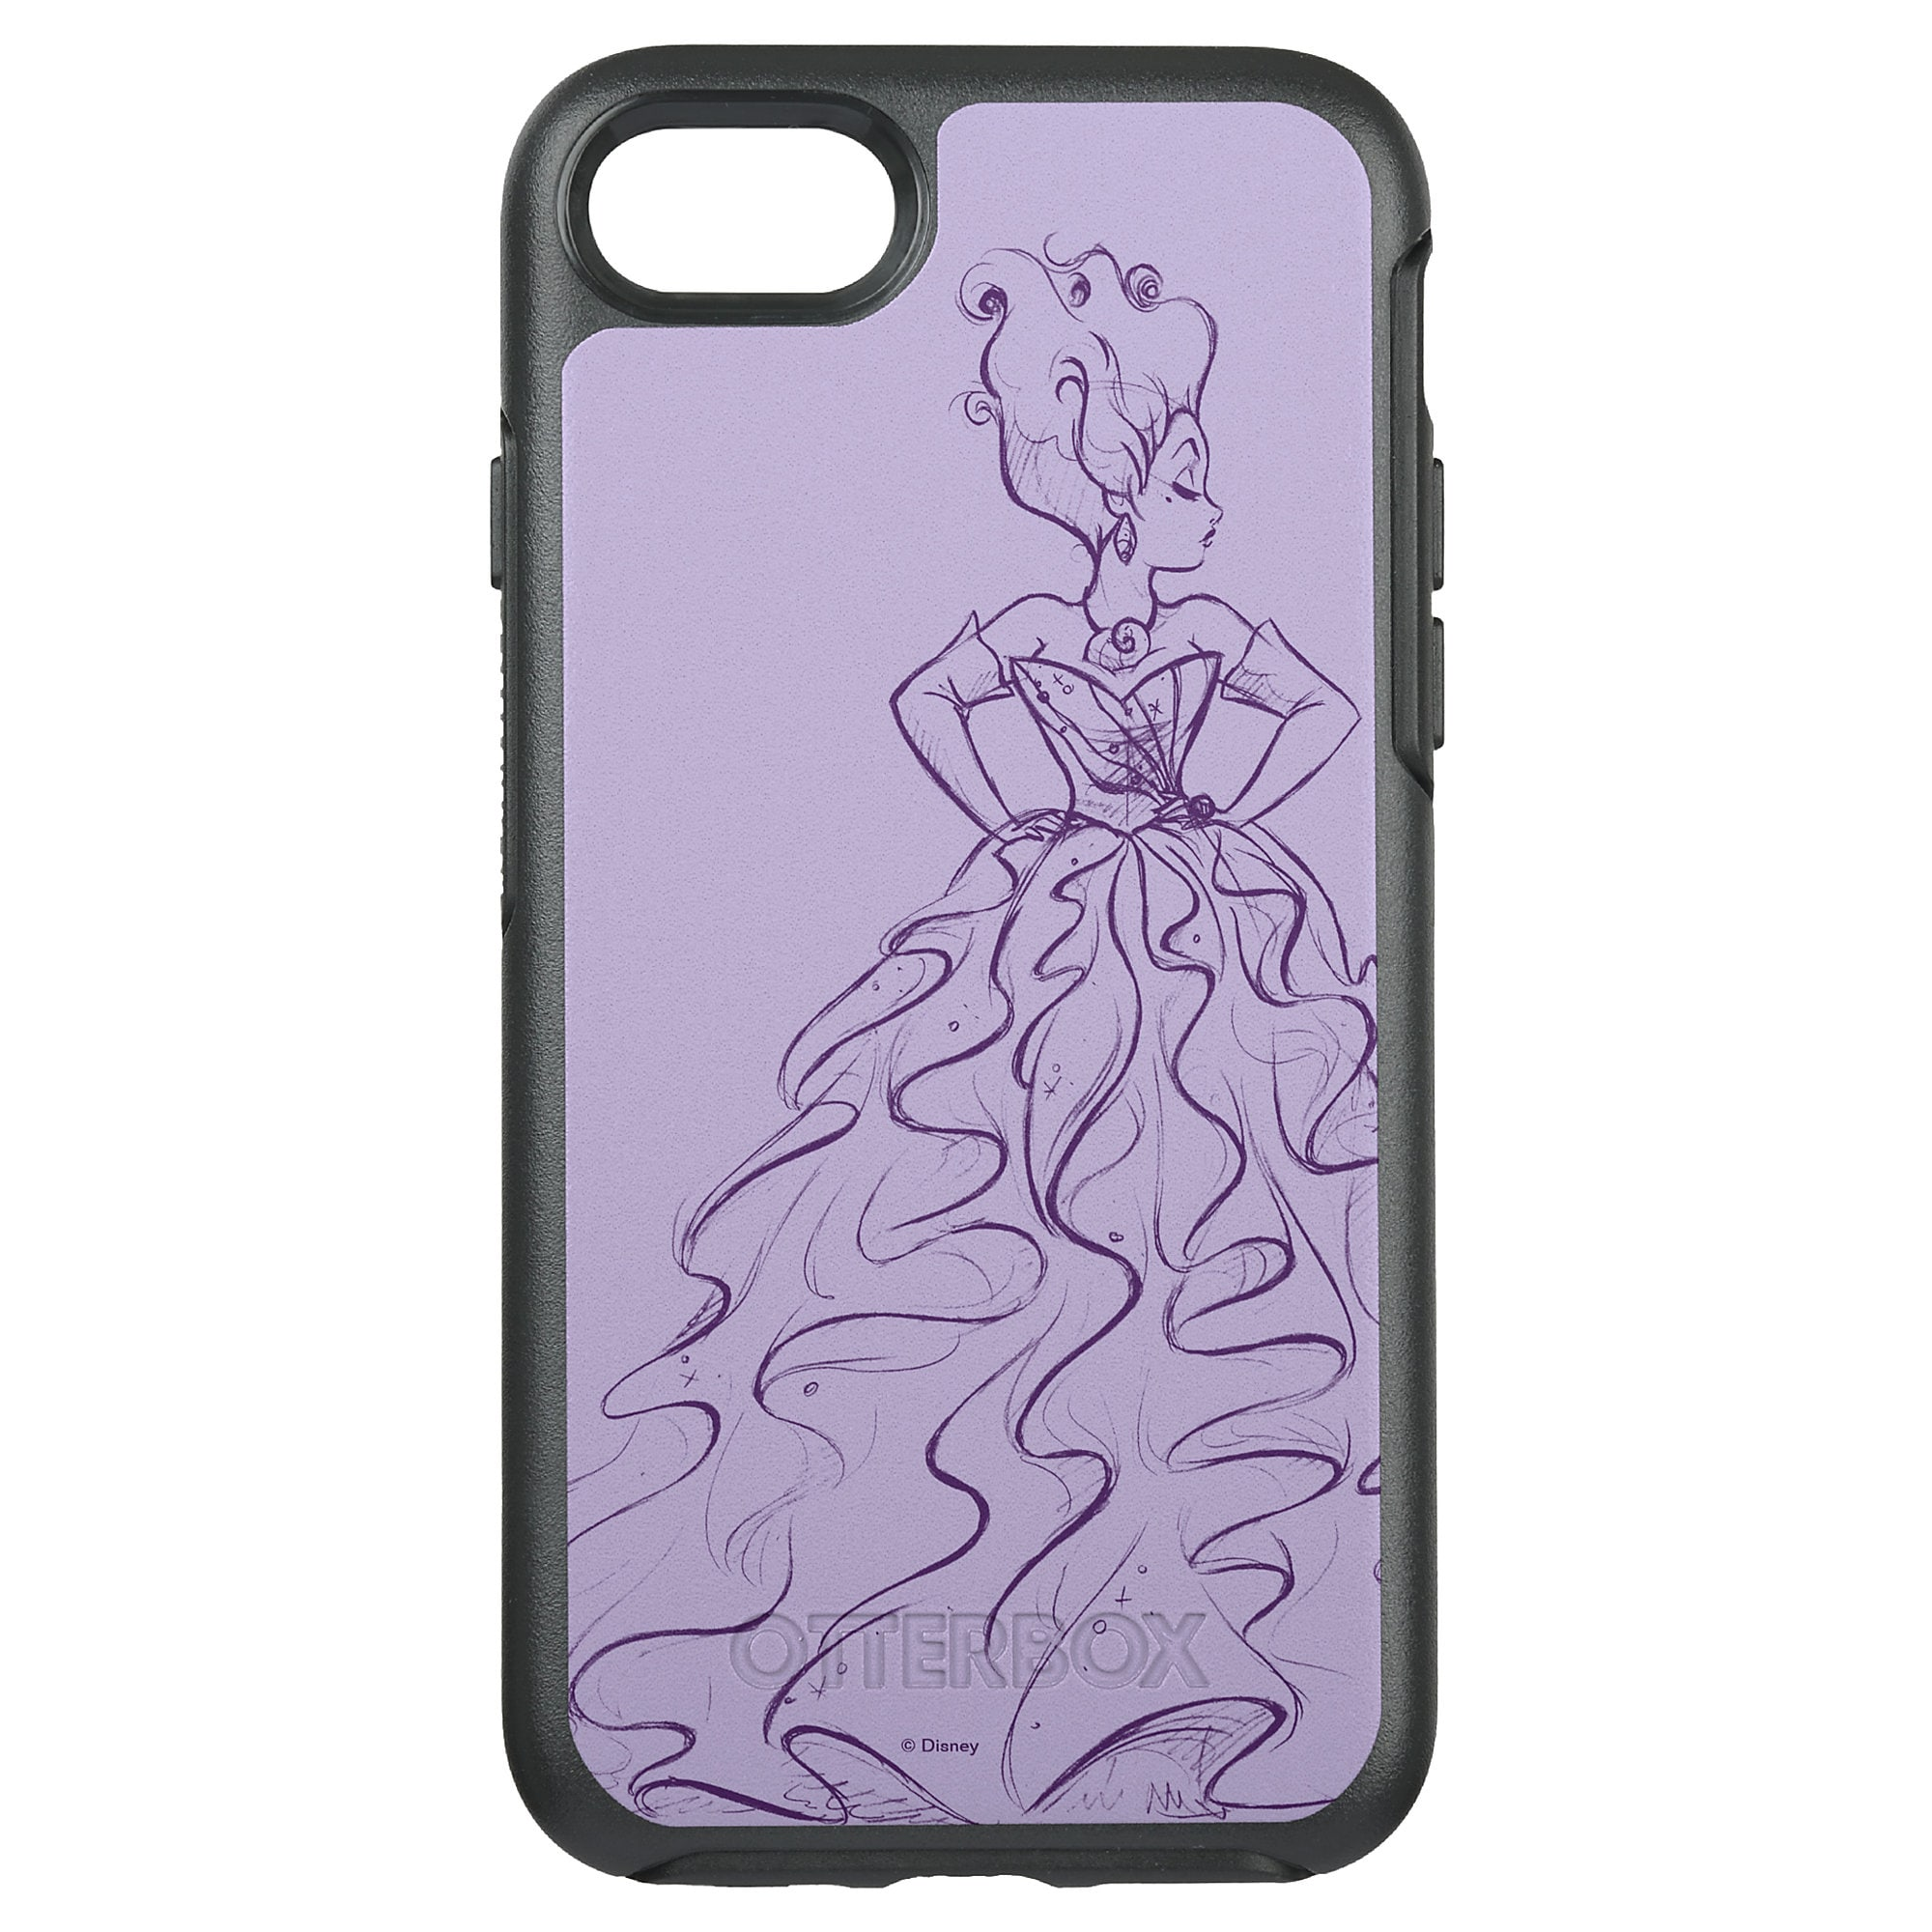 Ursula OtterBox Symmetry iPhone 8/7 Case - Art of Disney Villains Designer Collection